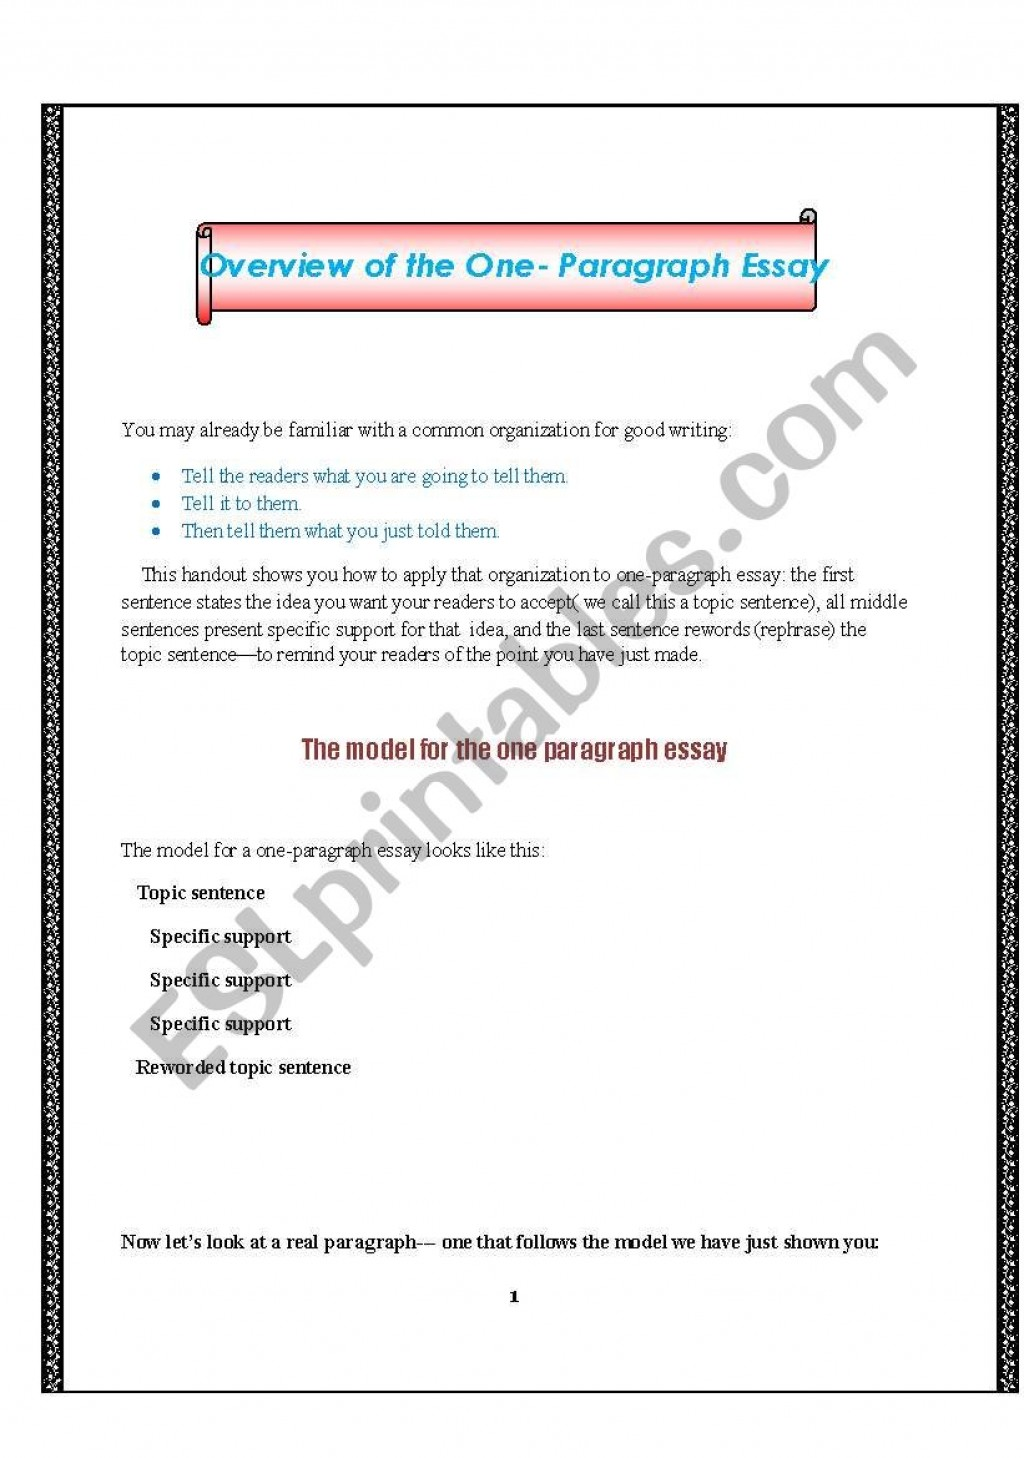 018 160445 1 Writing One Paragraph Essay Awesome About Dwarfism Topics Large